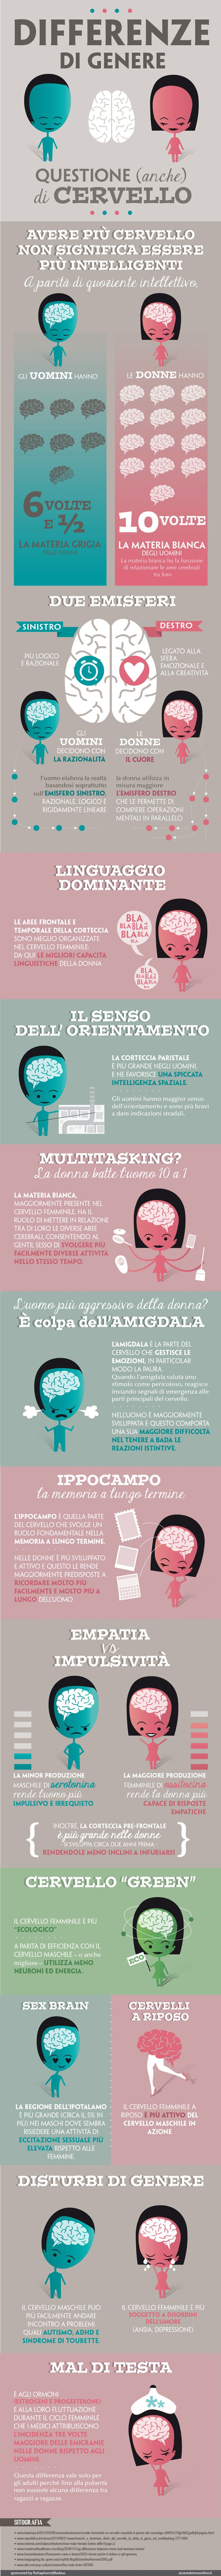 Differenze di genere? Questione anche di cervello - Infografica esseredonnaonline.it- illustrated by Alice Kle Borghi, kleland.com , brain woman vs man